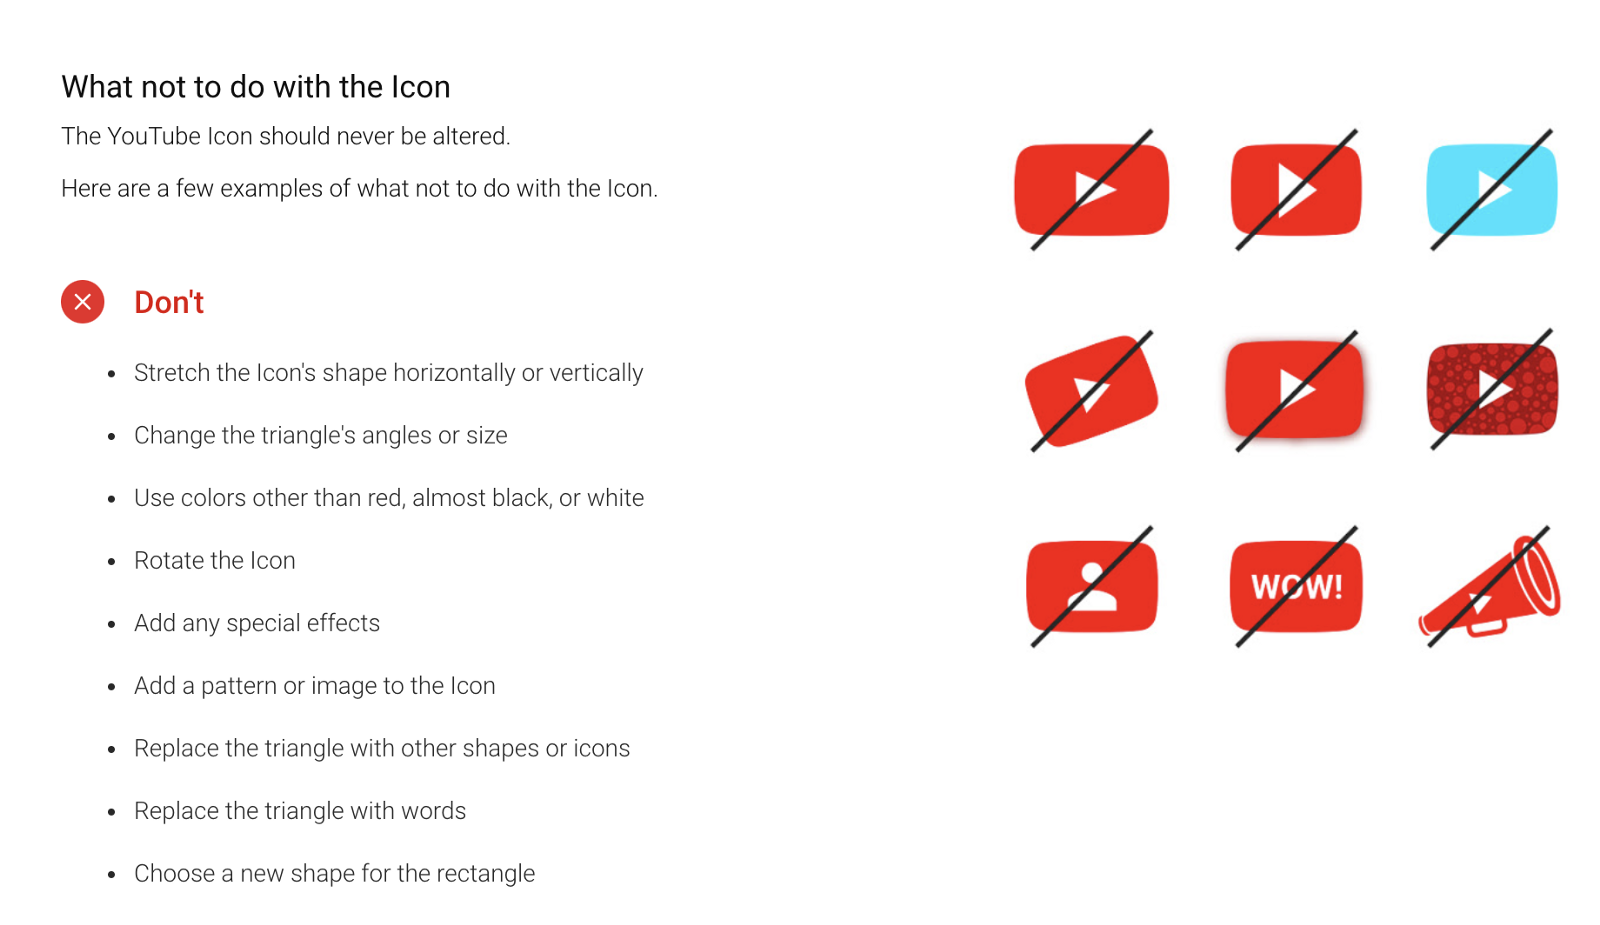 YouTube brand guidelines (source)